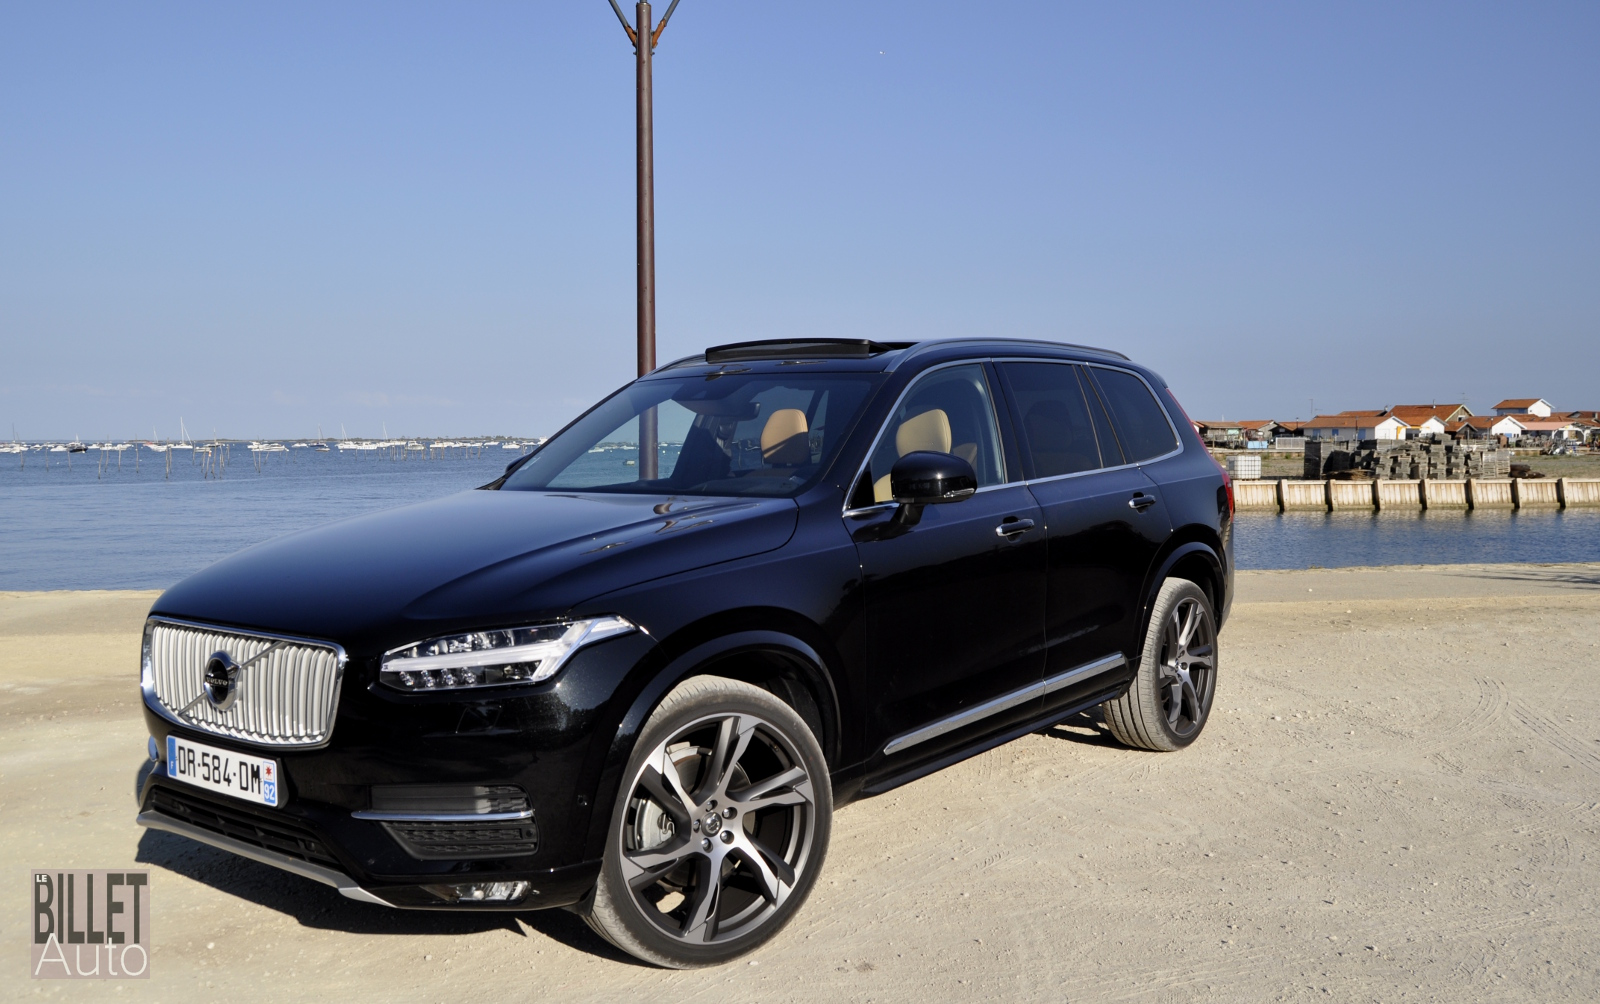 essai vivre avec le nouveau volvo xc90 lba test drive. Black Bedroom Furniture Sets. Home Design Ideas